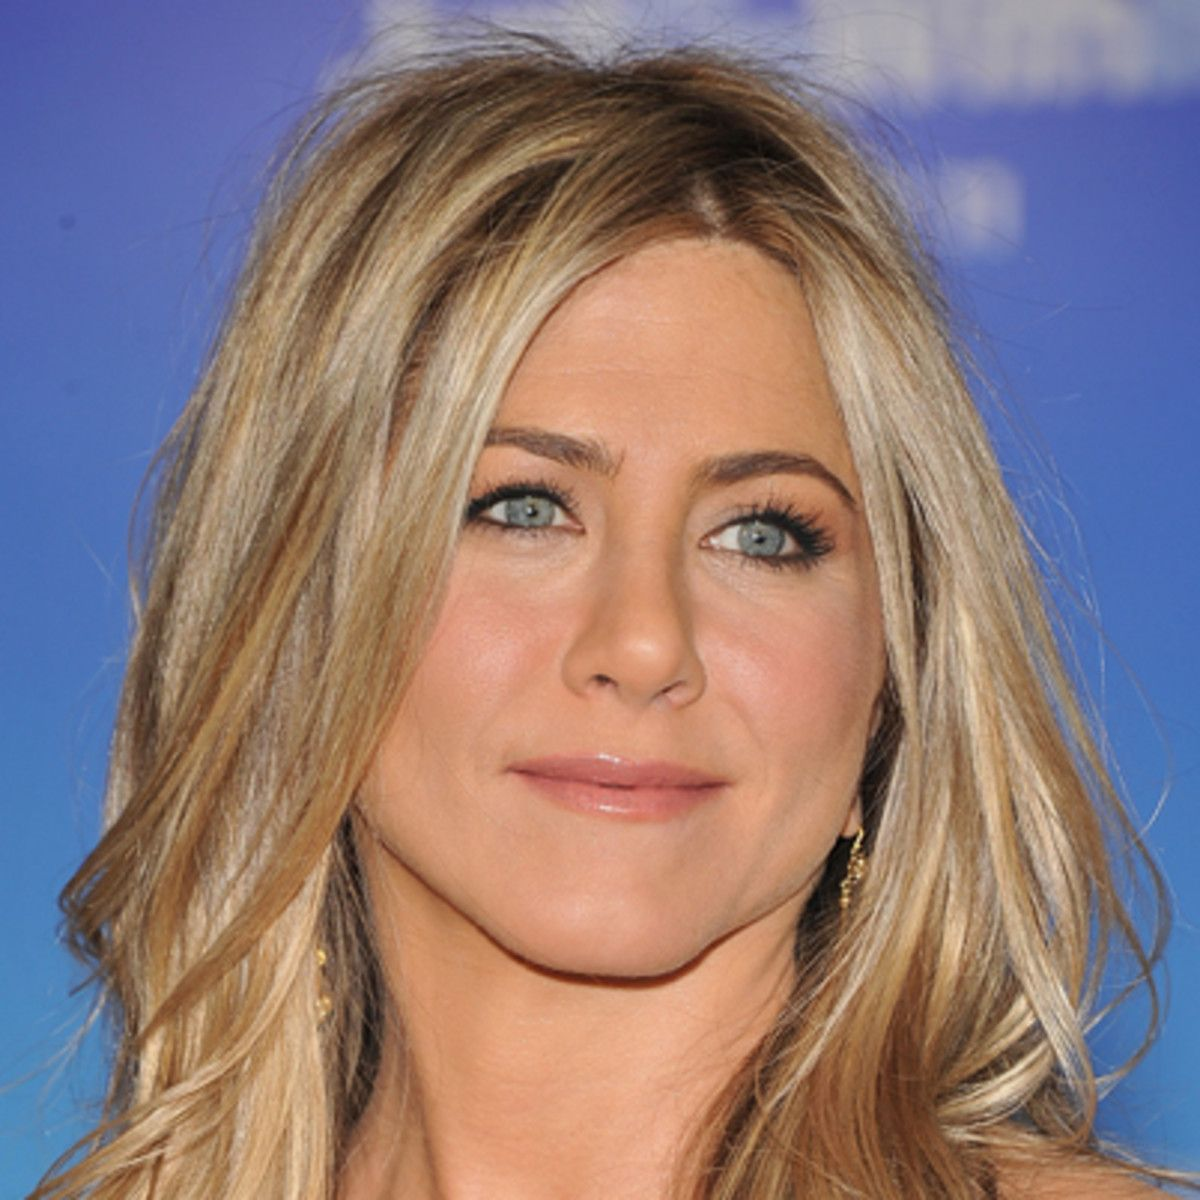 100+ Top Best Jennifer Aniston Latest Photos And Sexy Wallpapers ...